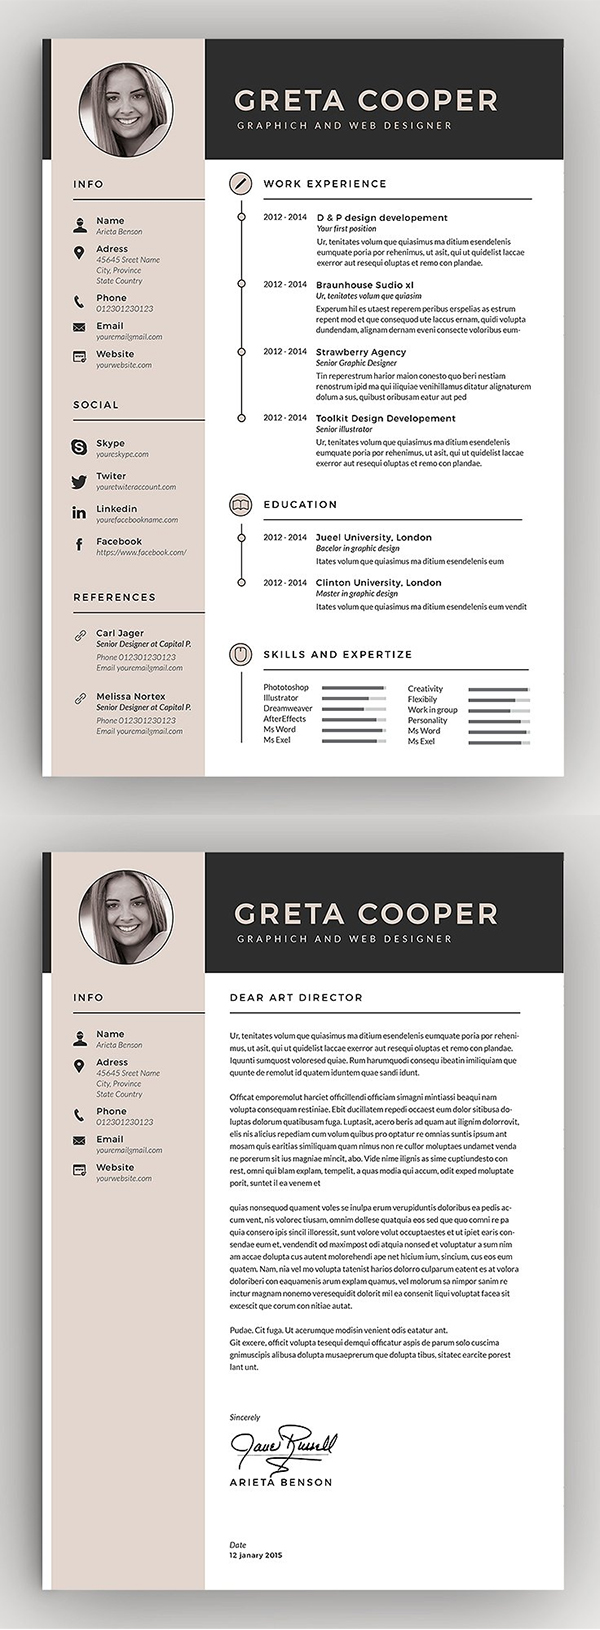 Awesome Resume / CV